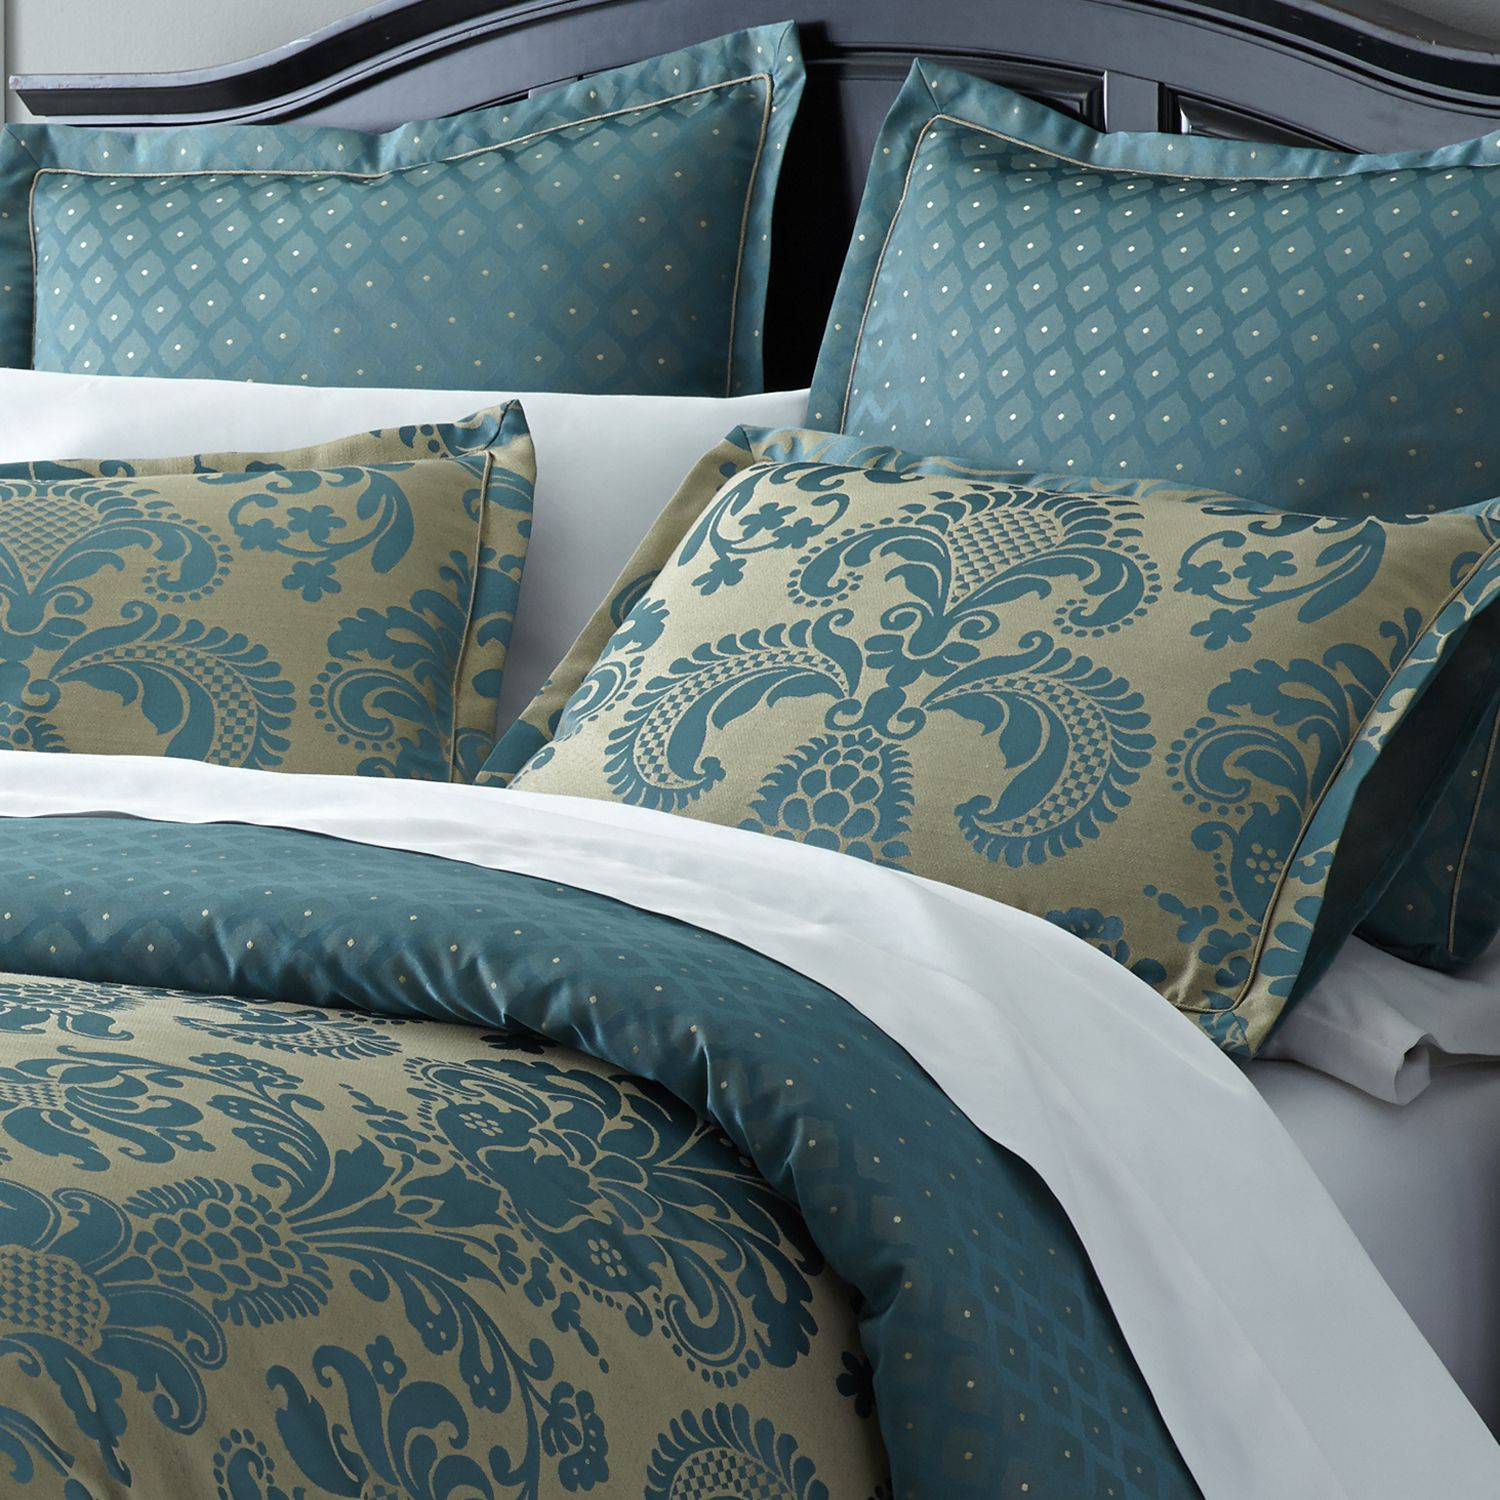 Turquoise Quilt Cover Turquoise Calibri Damask Duvet Cover And Sham Teal